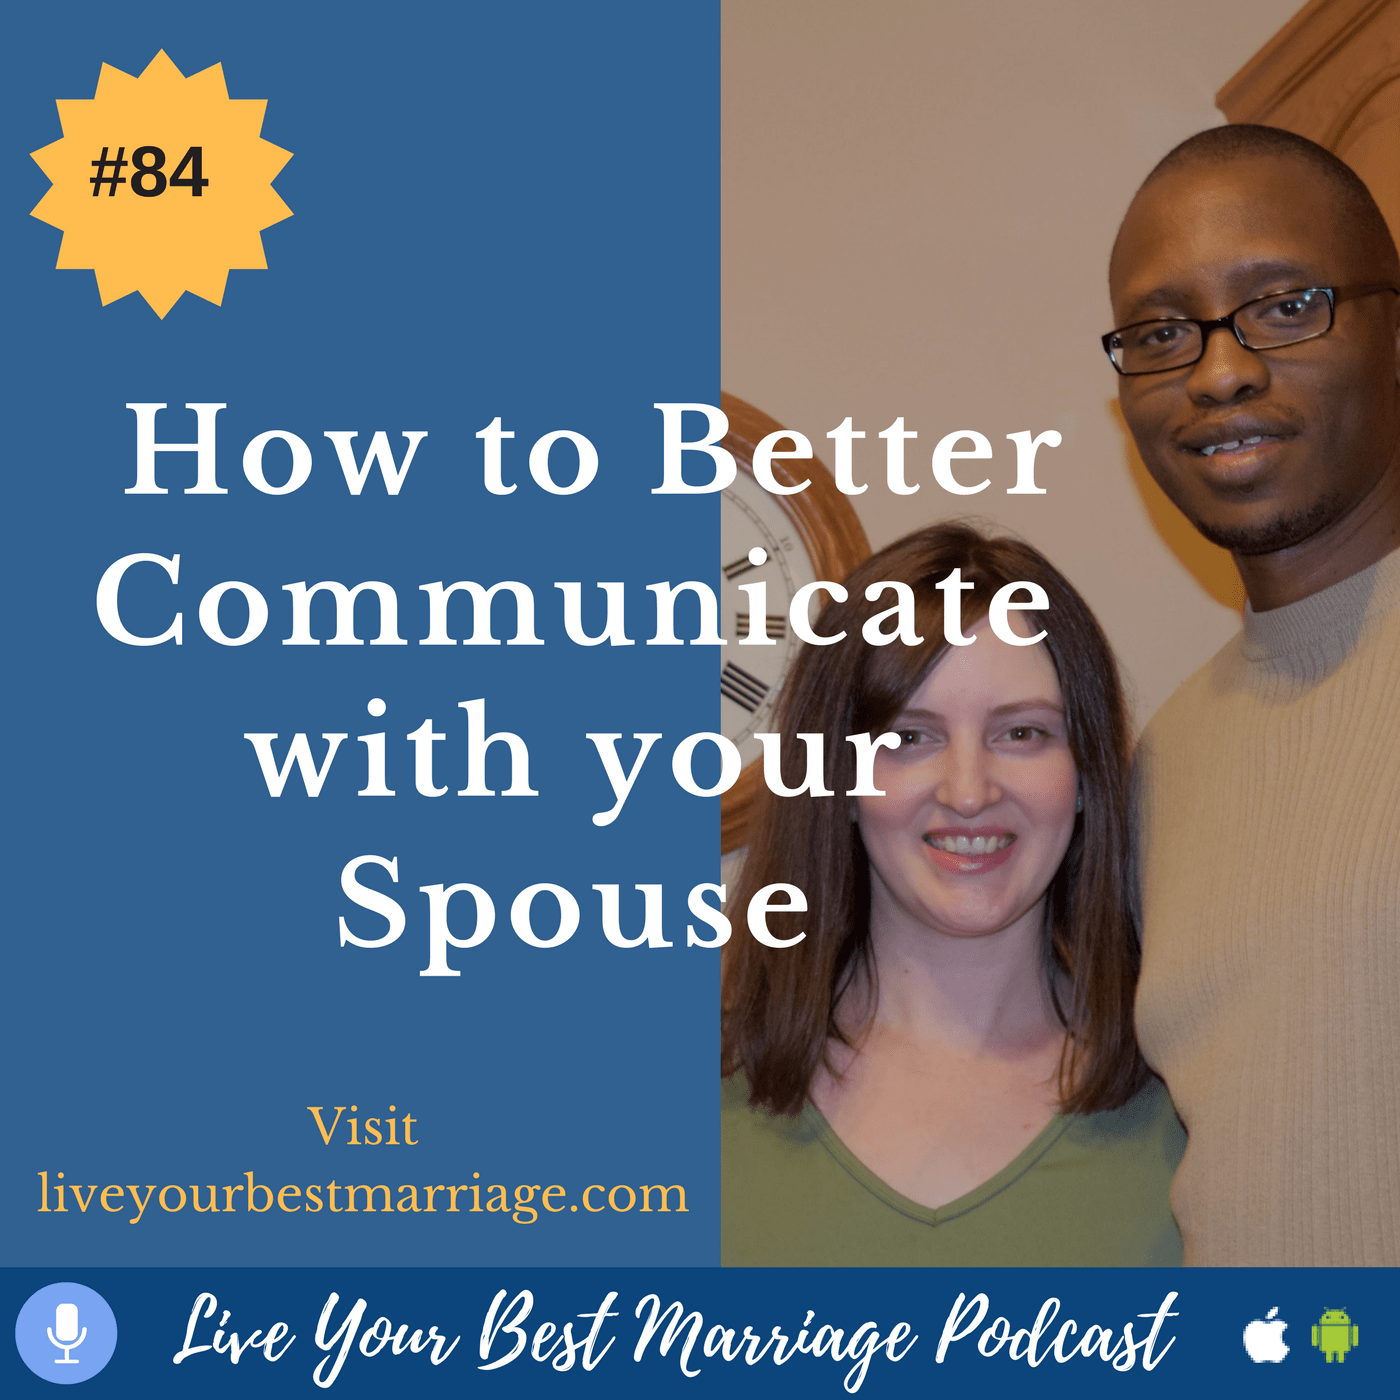 episode-84-how-to-better-communicate-with-your-spouse-audio_thumbnail.png